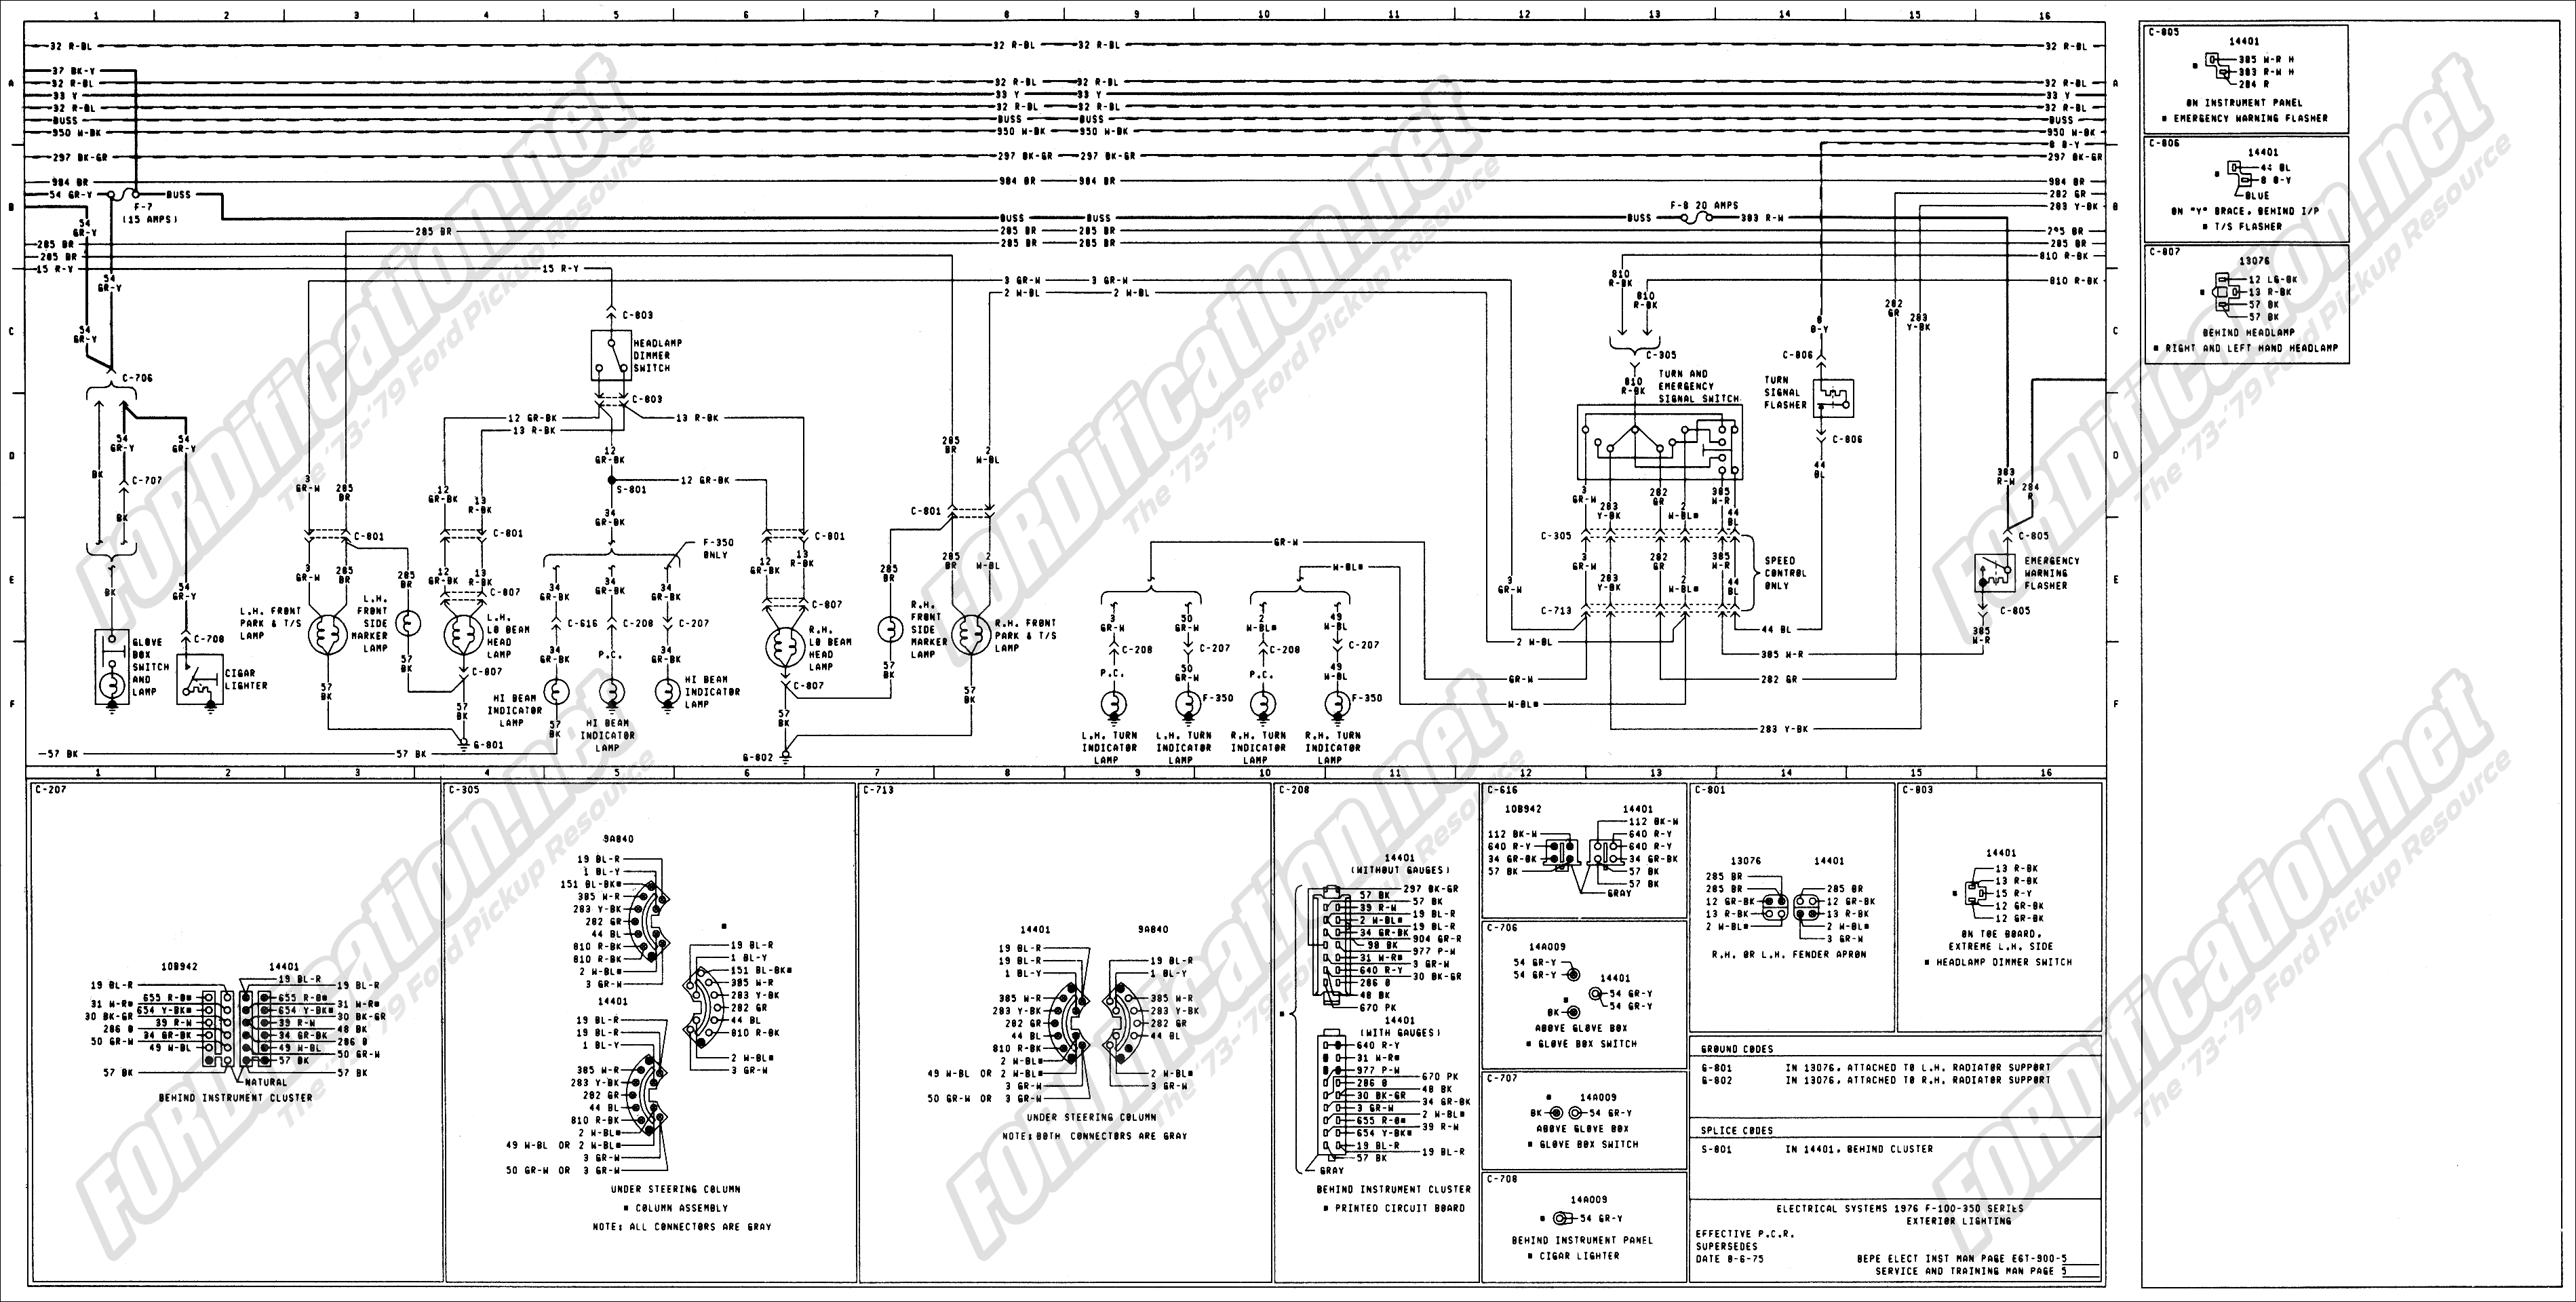 wiring_76master_5of9 1978 ford f150 wiring diagram 1978 ford f150 ignition wiring 1986 ford f150 ignition wiring diagram at creativeand.co